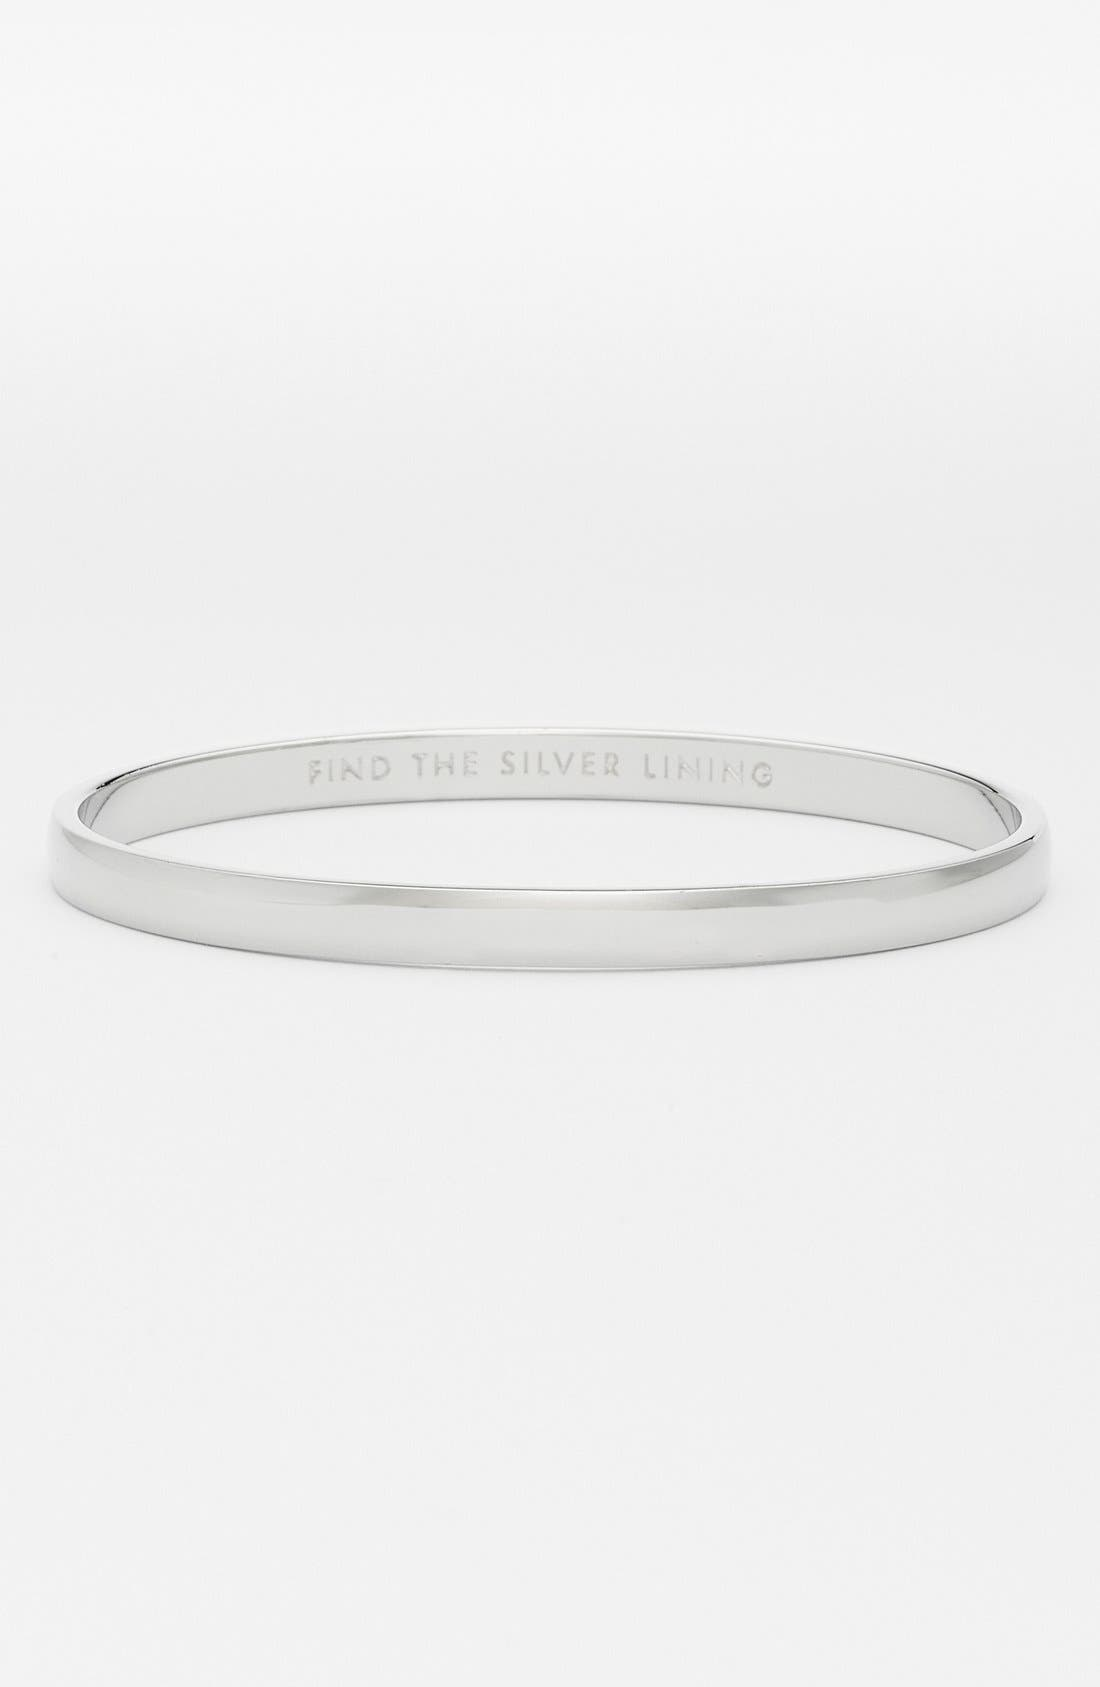 'idiom - find the silver lining' bangle,                         Main,                         color, SILVER